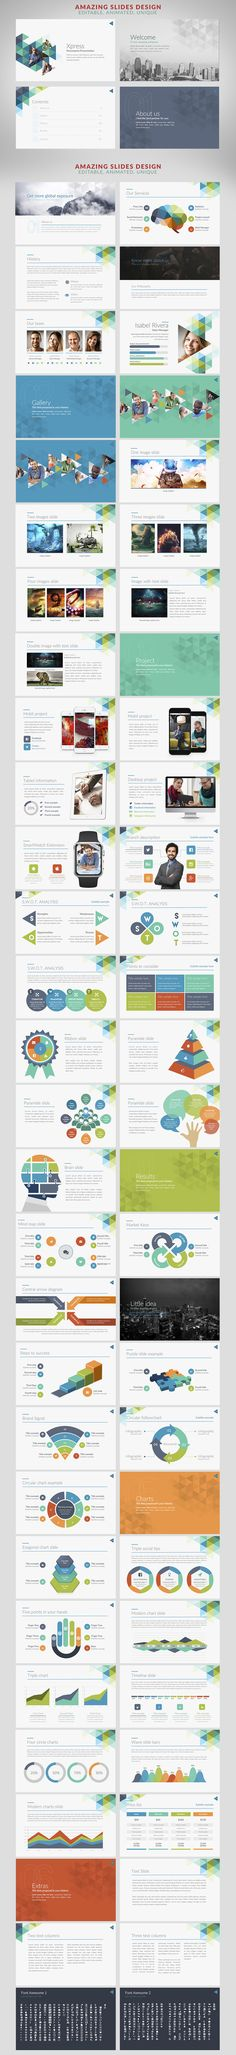 Xpress | Powerpoint templates - Presentations